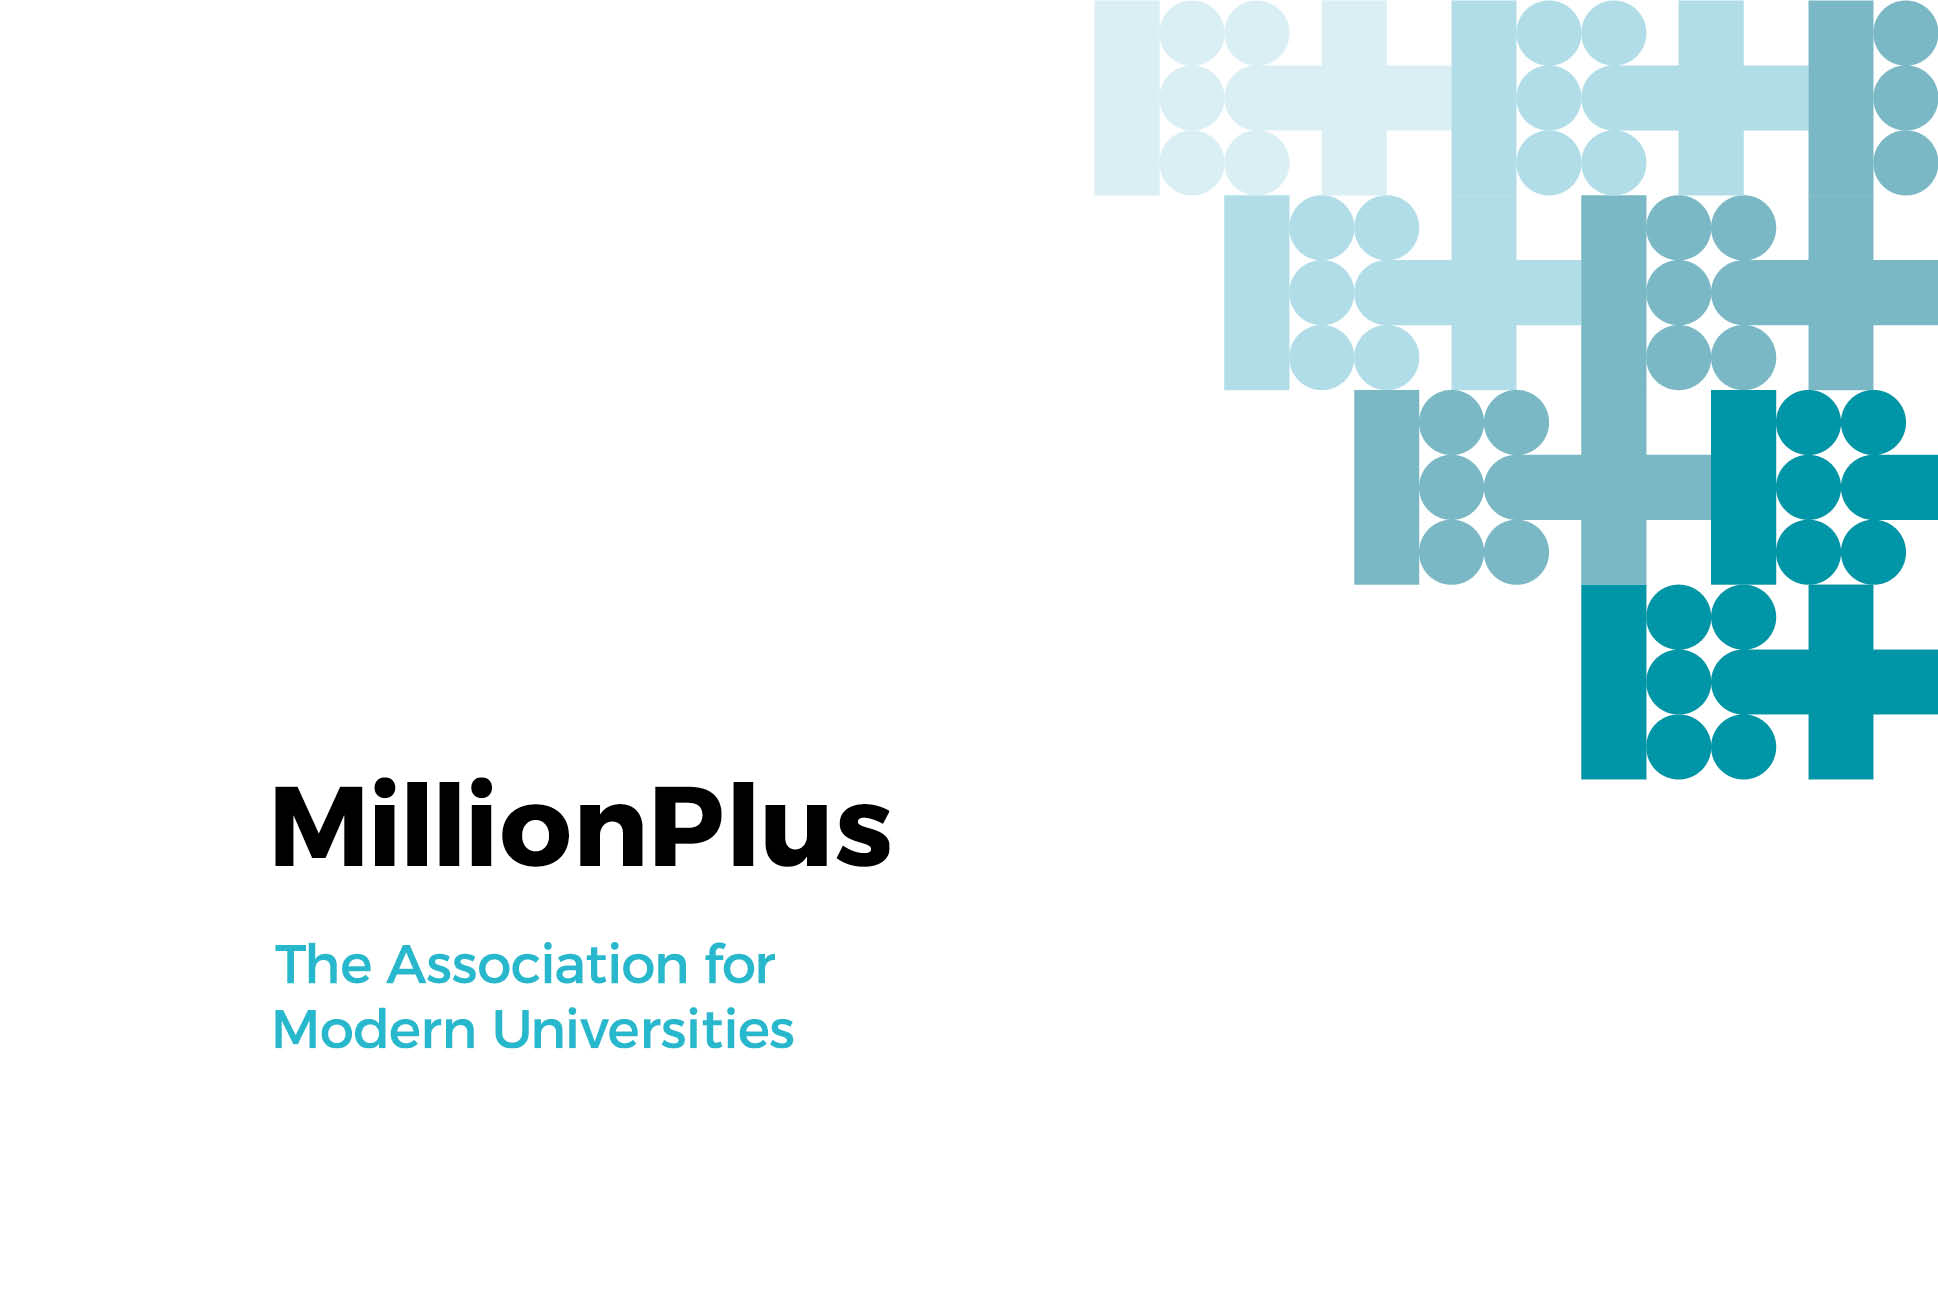 MillionPlus branding | Education Branding London | Independent Marketing London | IM London